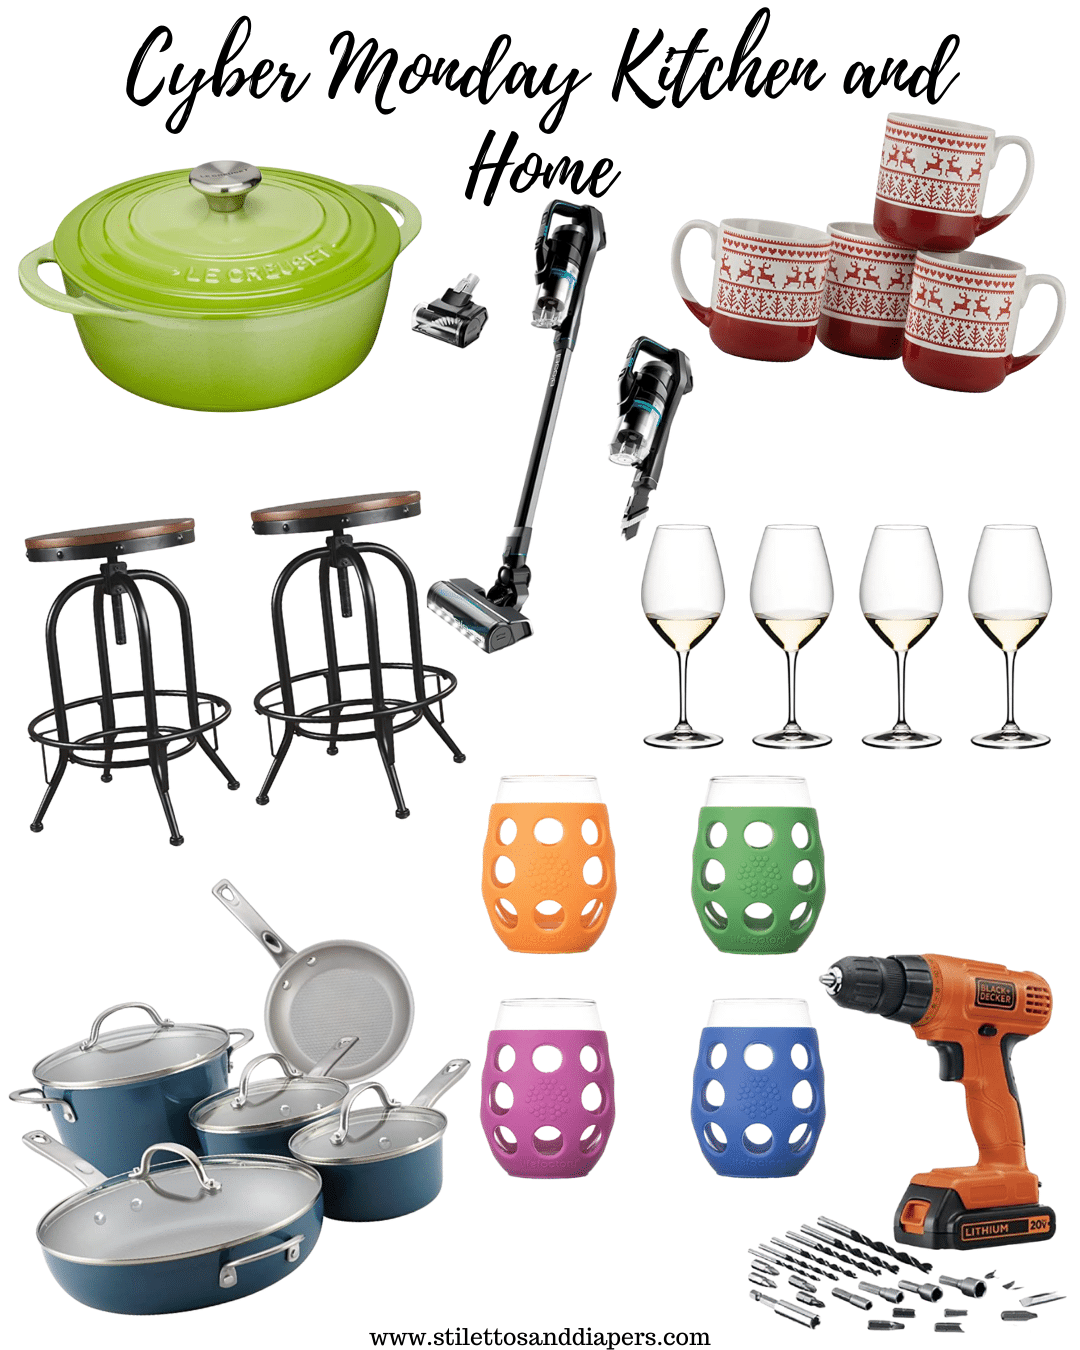 Cyber Monday Kitchen and home deals, Stilettos and Diapers